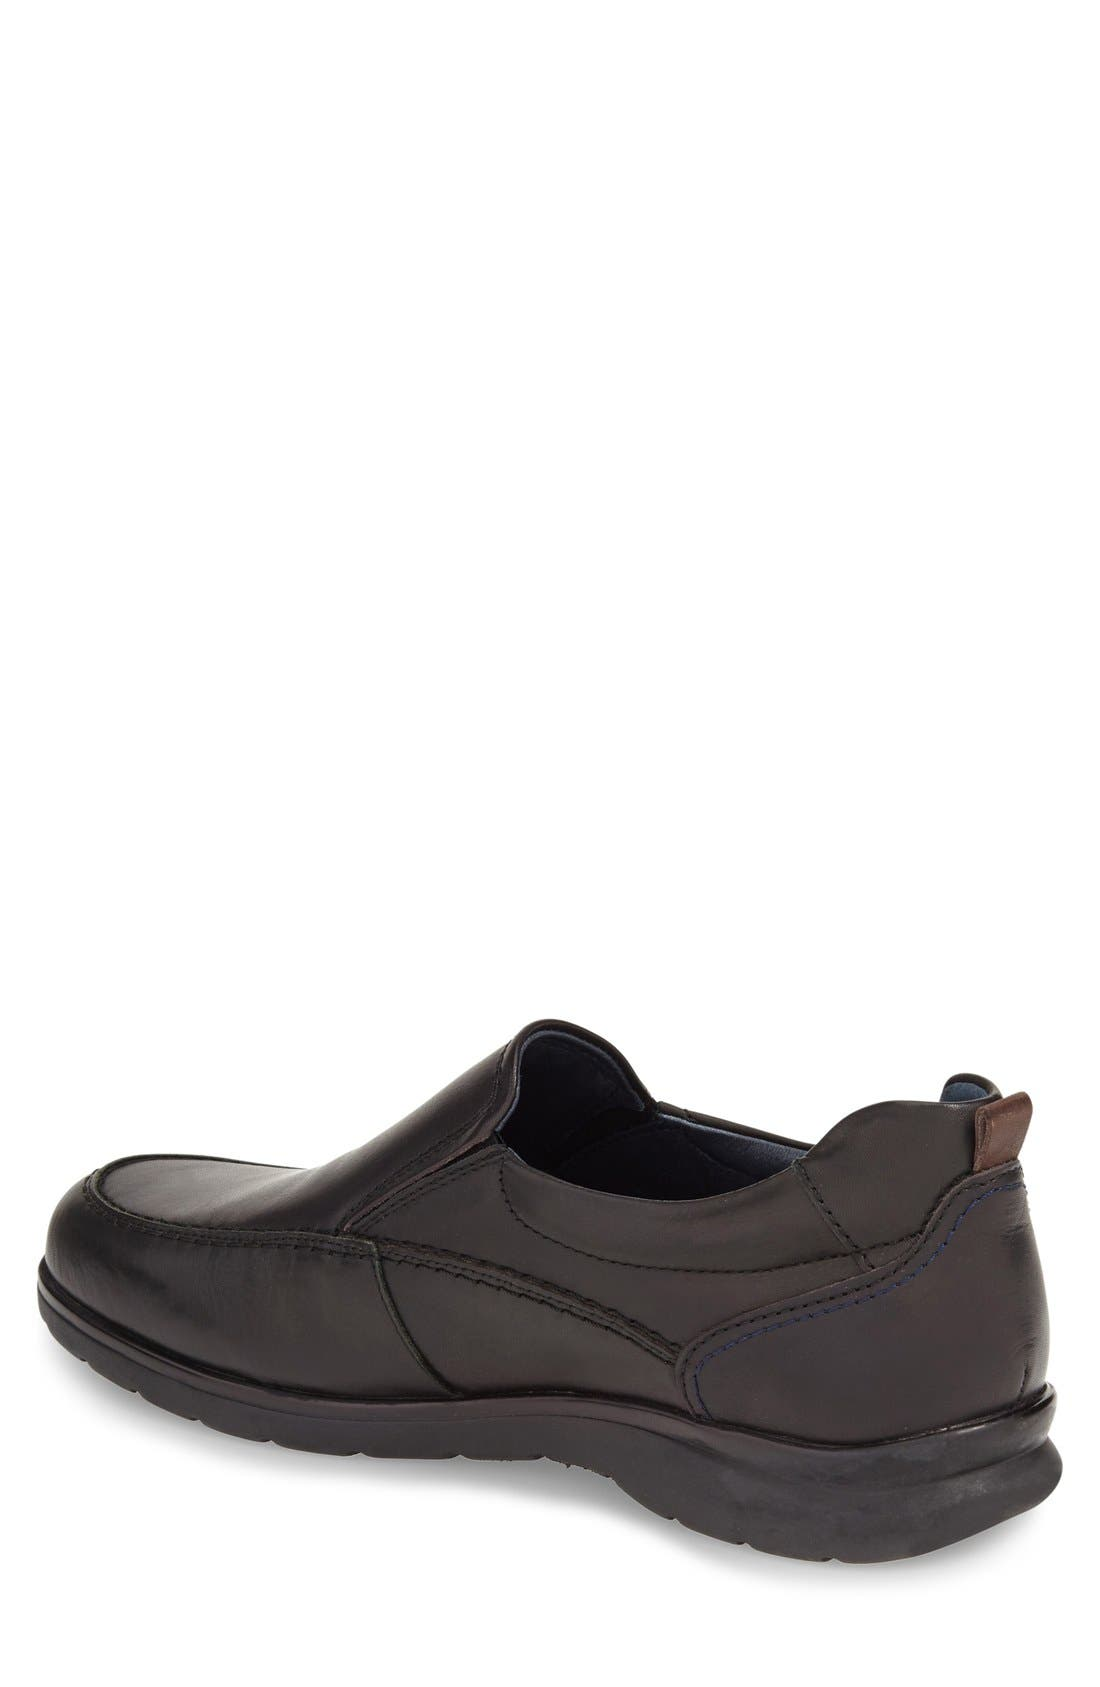 'San Lorenzo' Slip-On,                             Alternate thumbnail 2, color,                             Black Leather